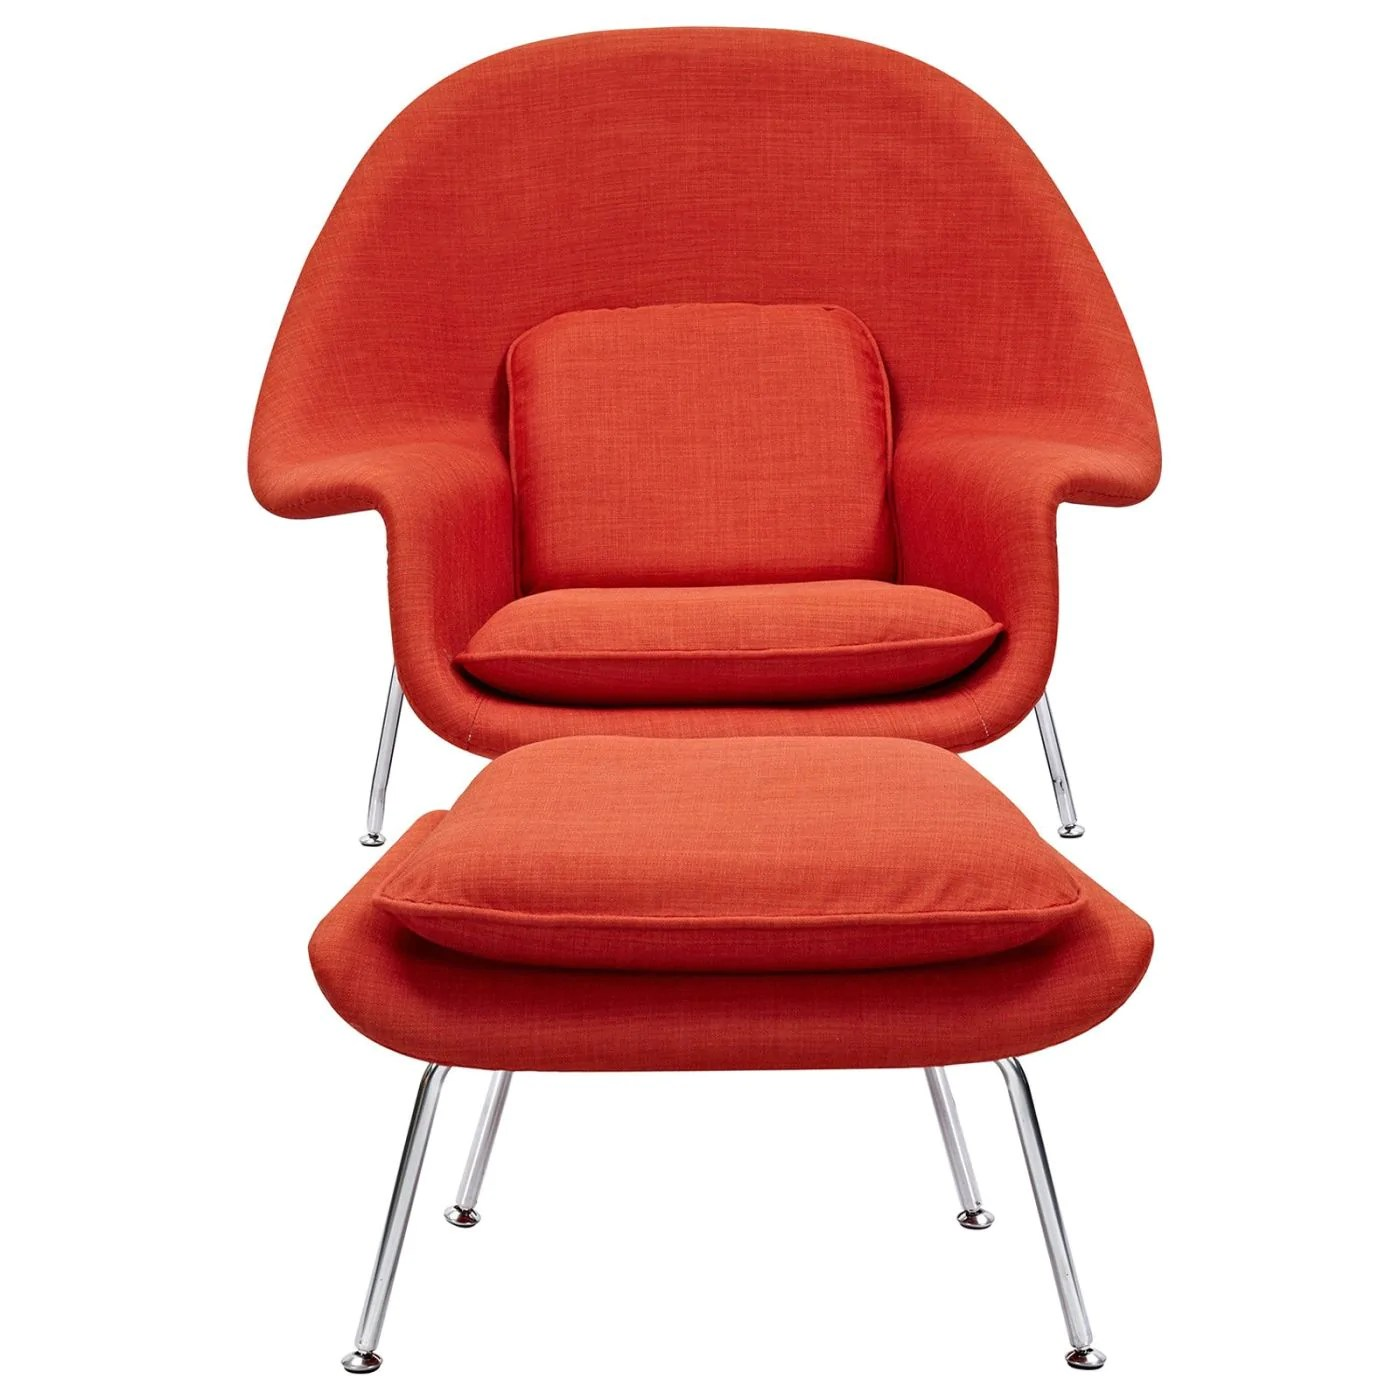 Chair Saarinen Buy Nye Koncept 225505 Eero Saarinen Style Womb Chair Avocado Green Lava Red At Contemporary Furniture Warehouse